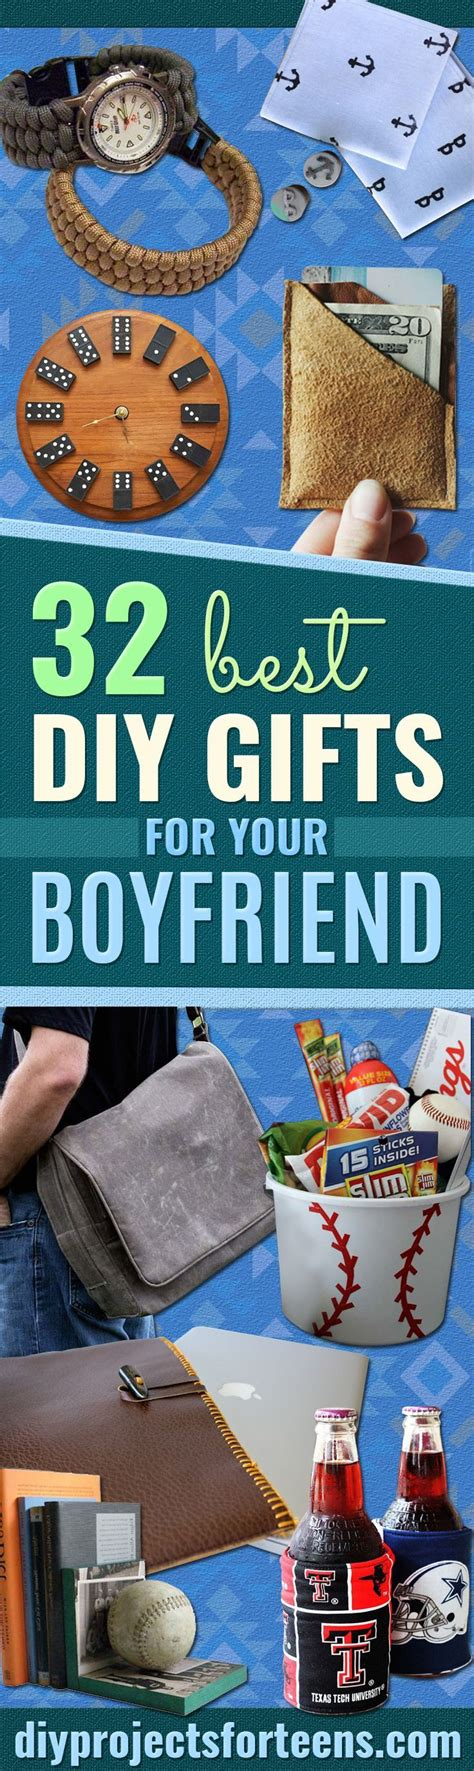 the 25 best ideas about cheap gifts for boyfriend on